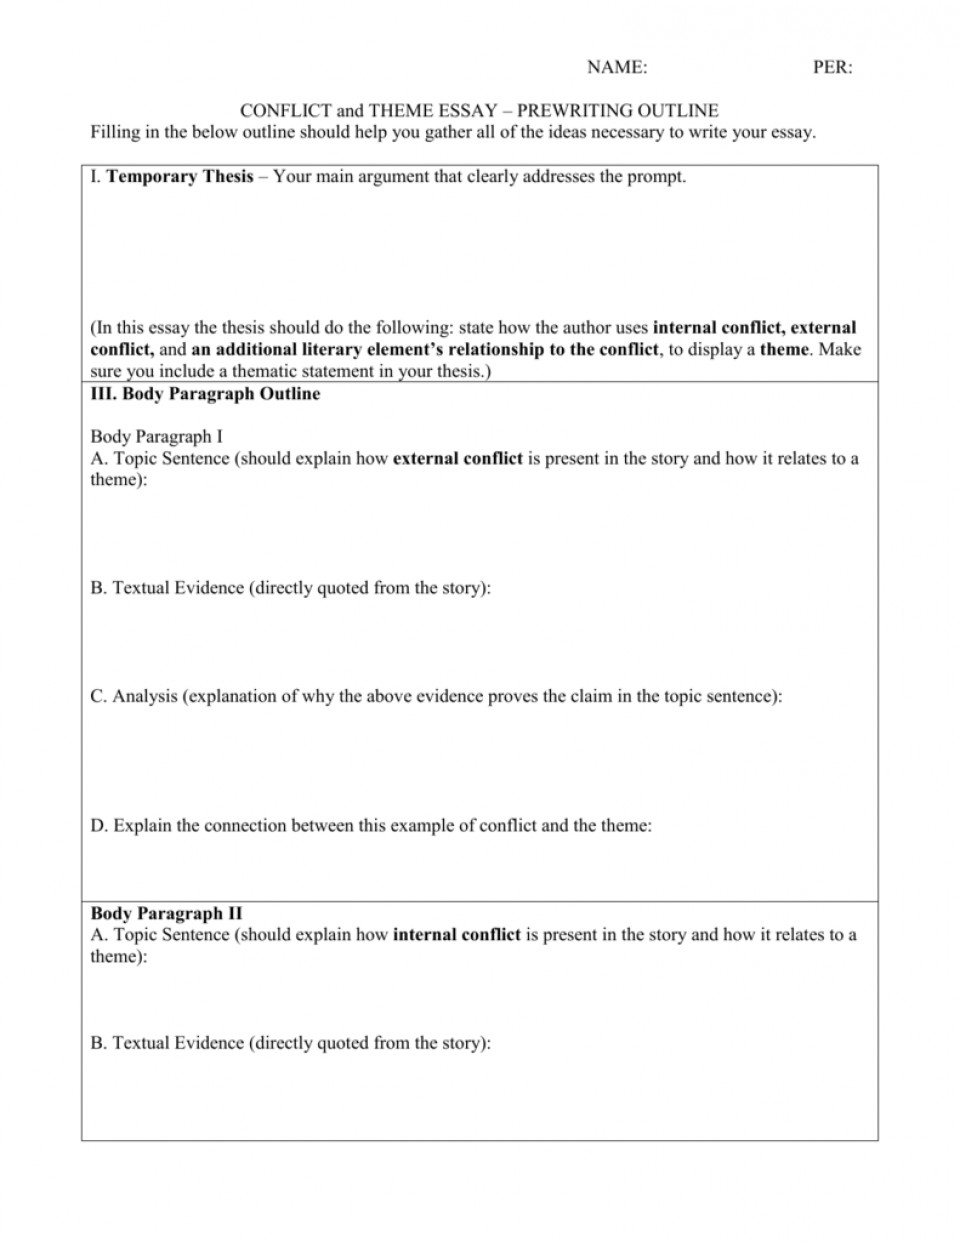 013 Essay Outline 008002500 1 Impressive Narrative Worksheet Writing Graphic Organizers Thematic Organizer 960